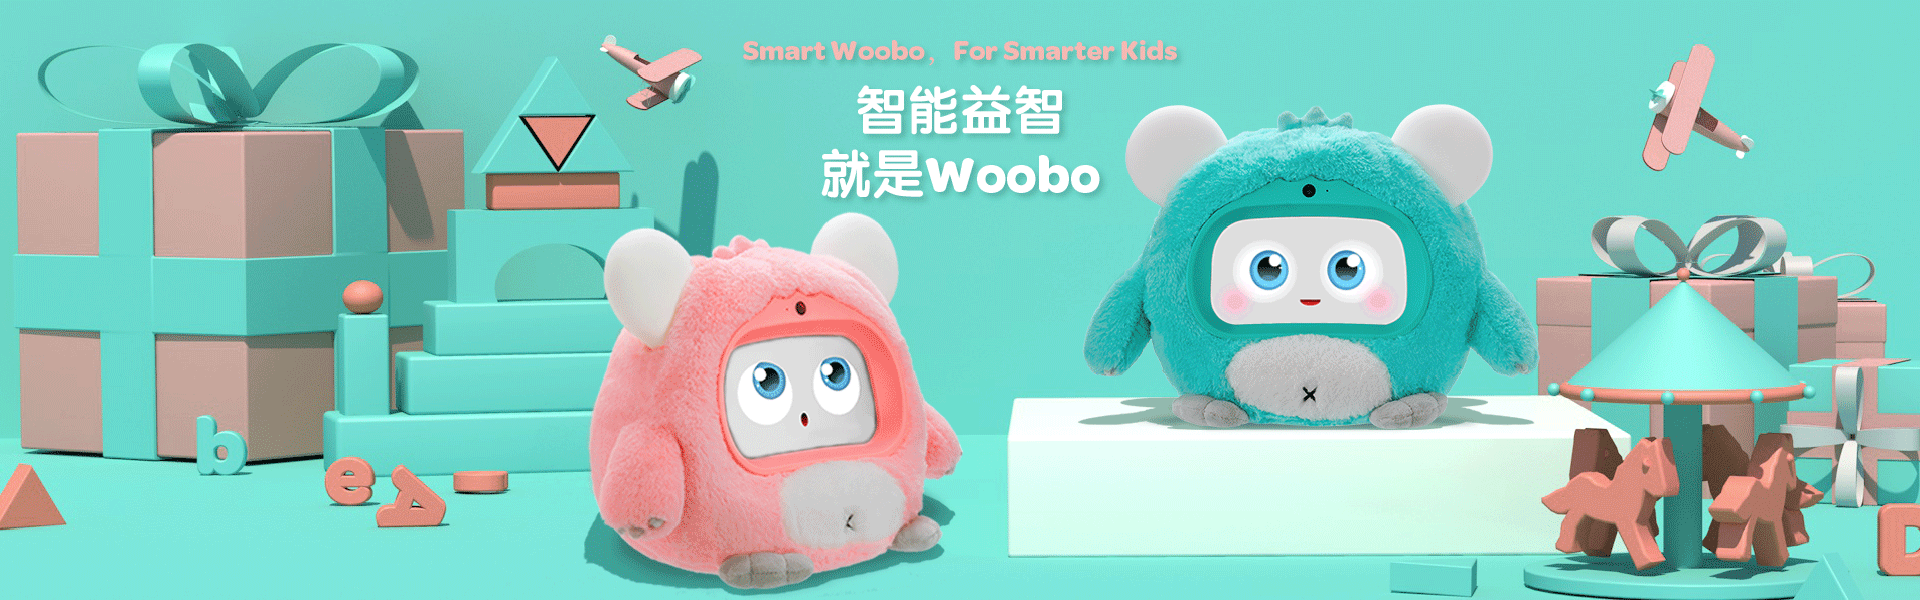 Woobo_companion robot that's fuzzy smart and goofy.